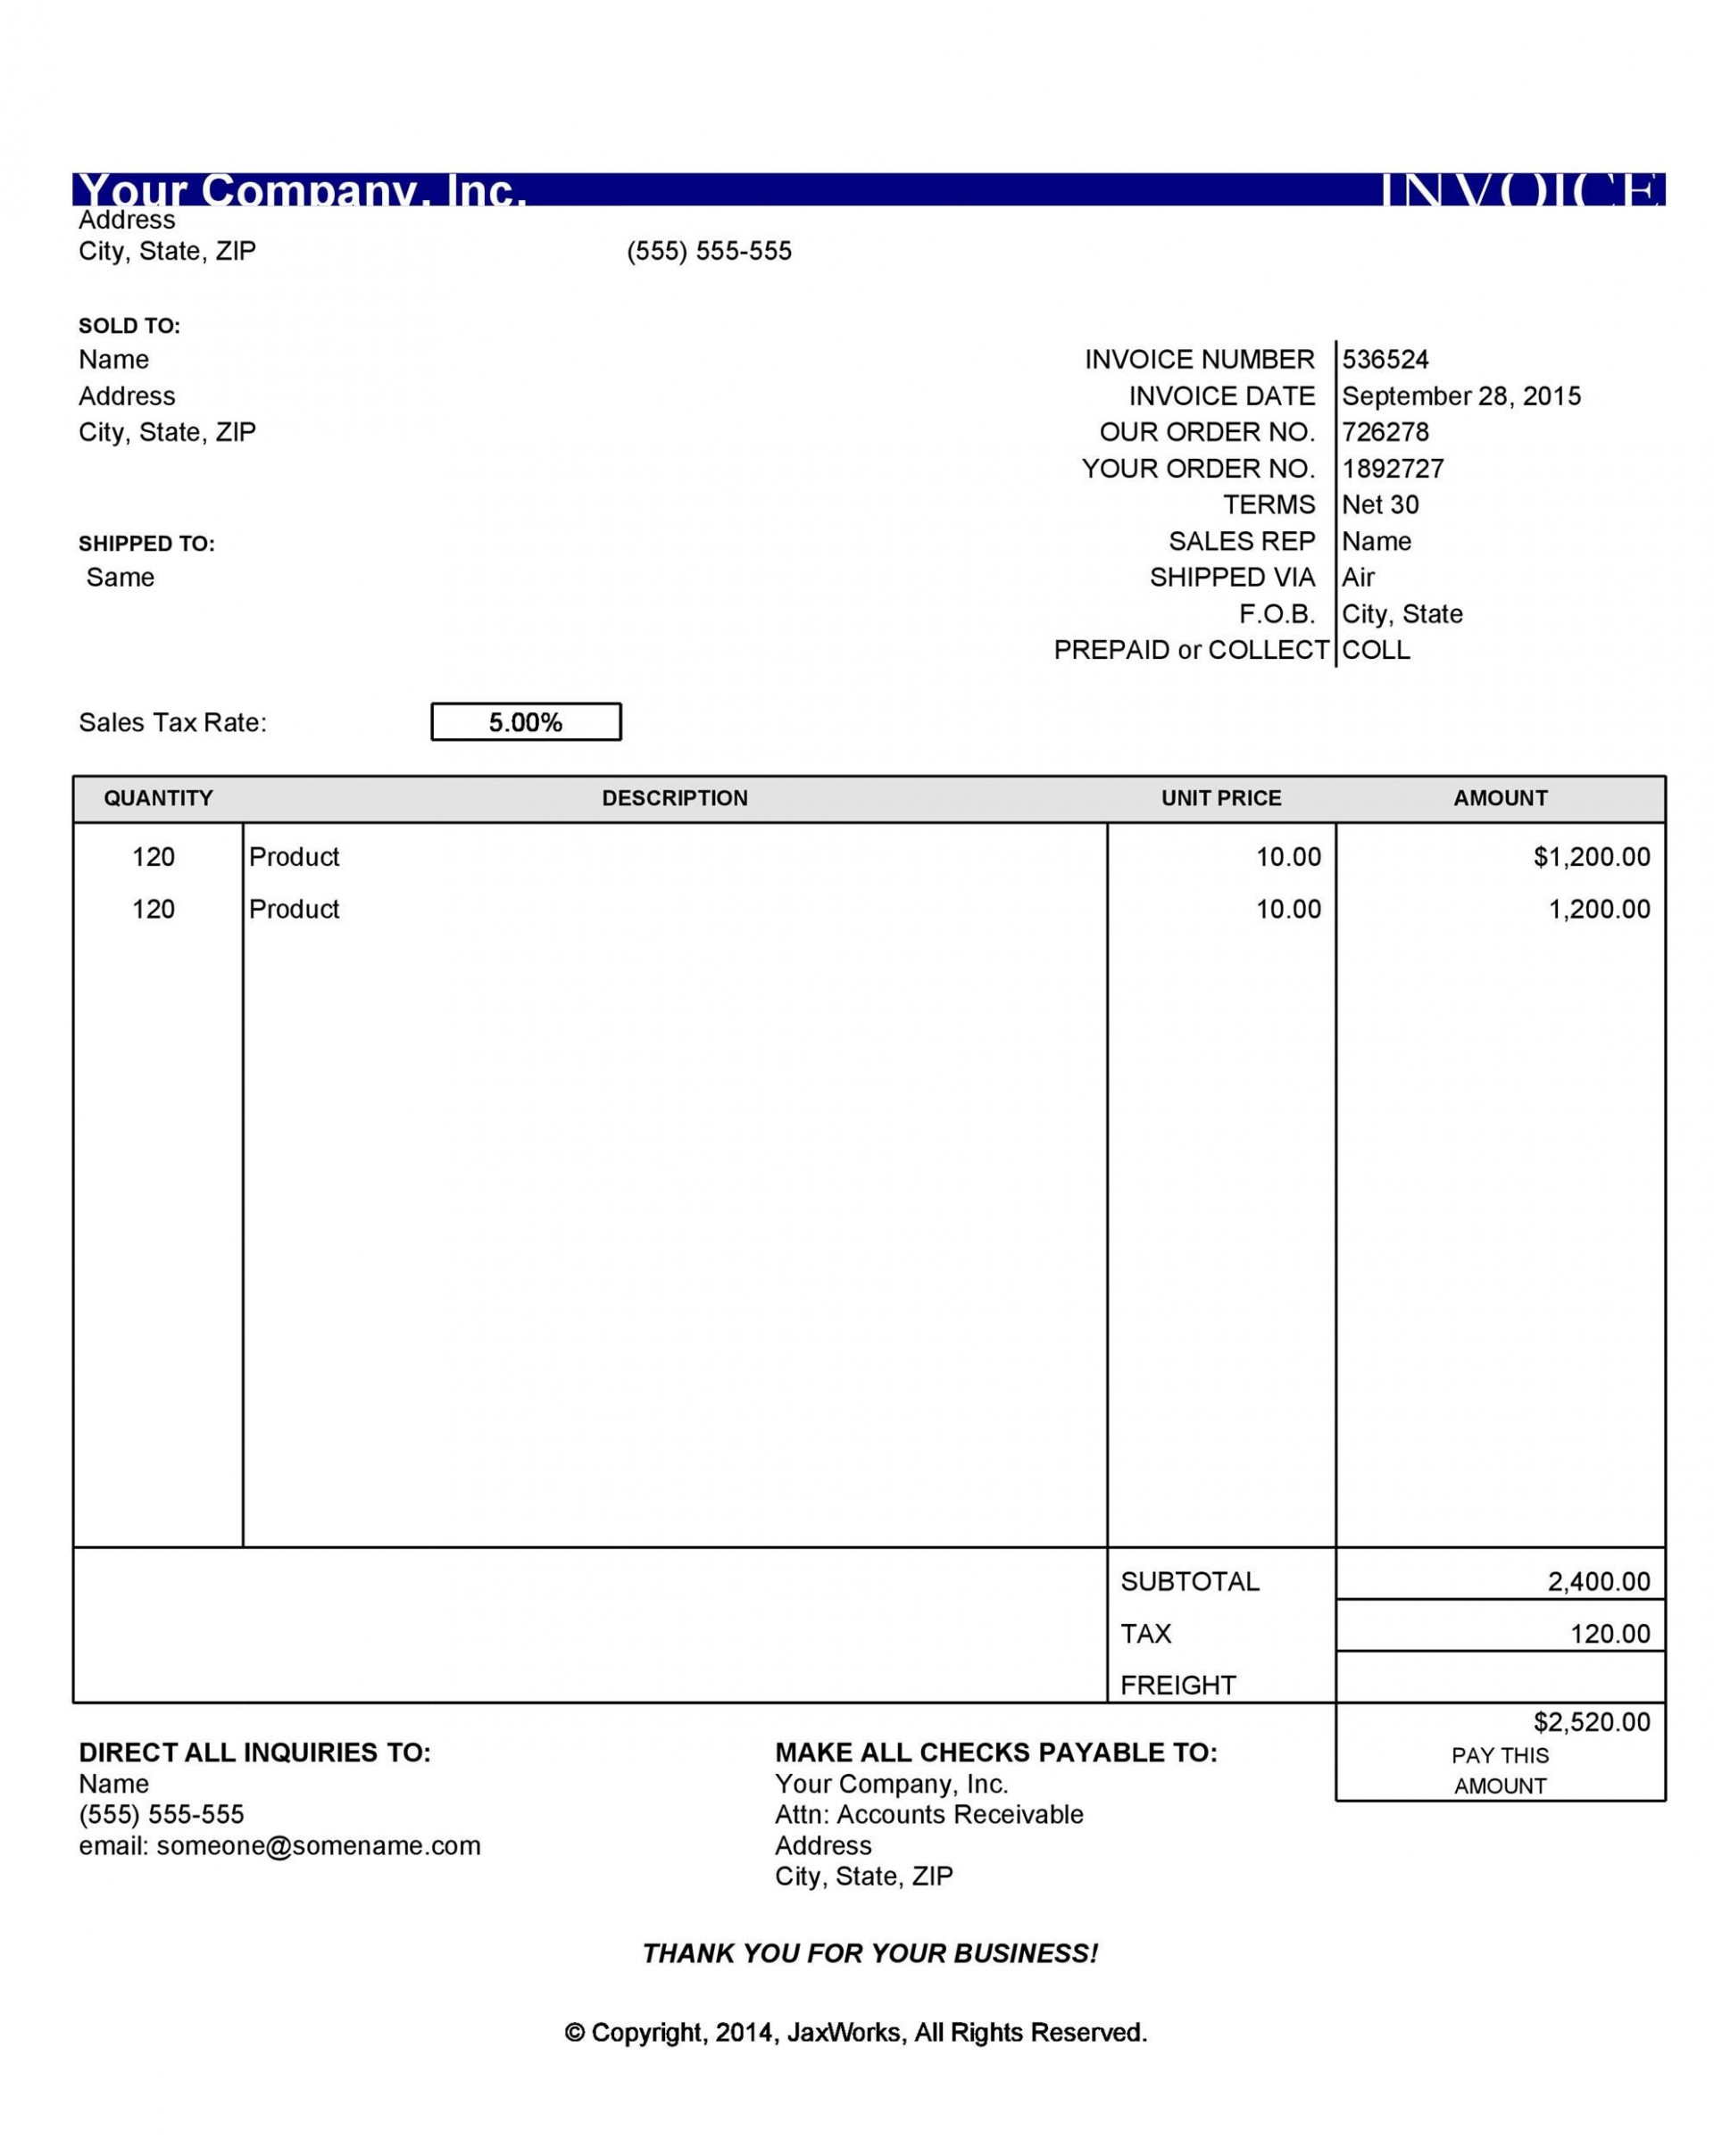 003 Remarkable Sale Invoice Template Excel Download Free High Def 1920